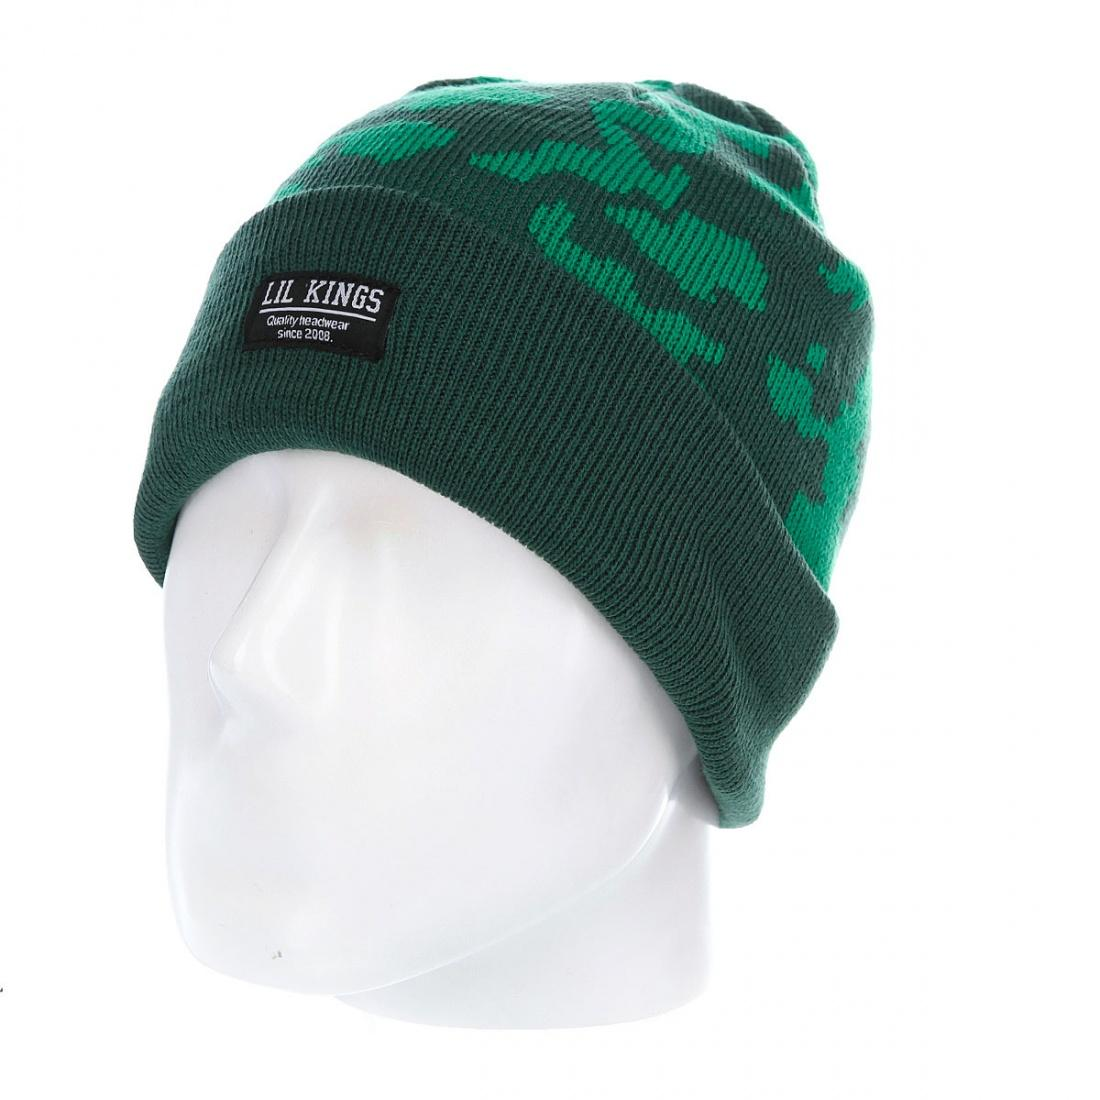 Шапка Lil kings Lil kings Camo Green от Boardshop-1